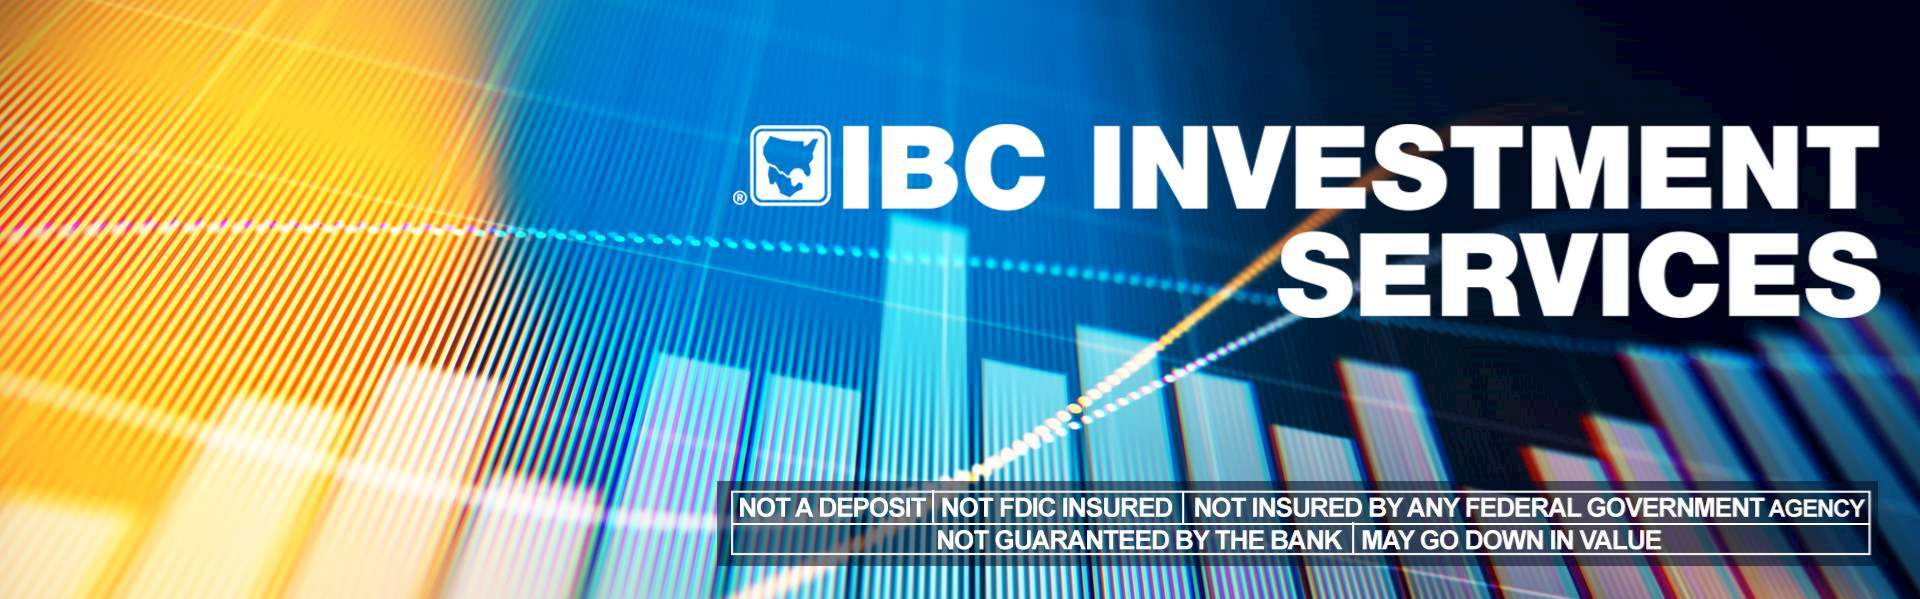 IBC Bank Personal Investments